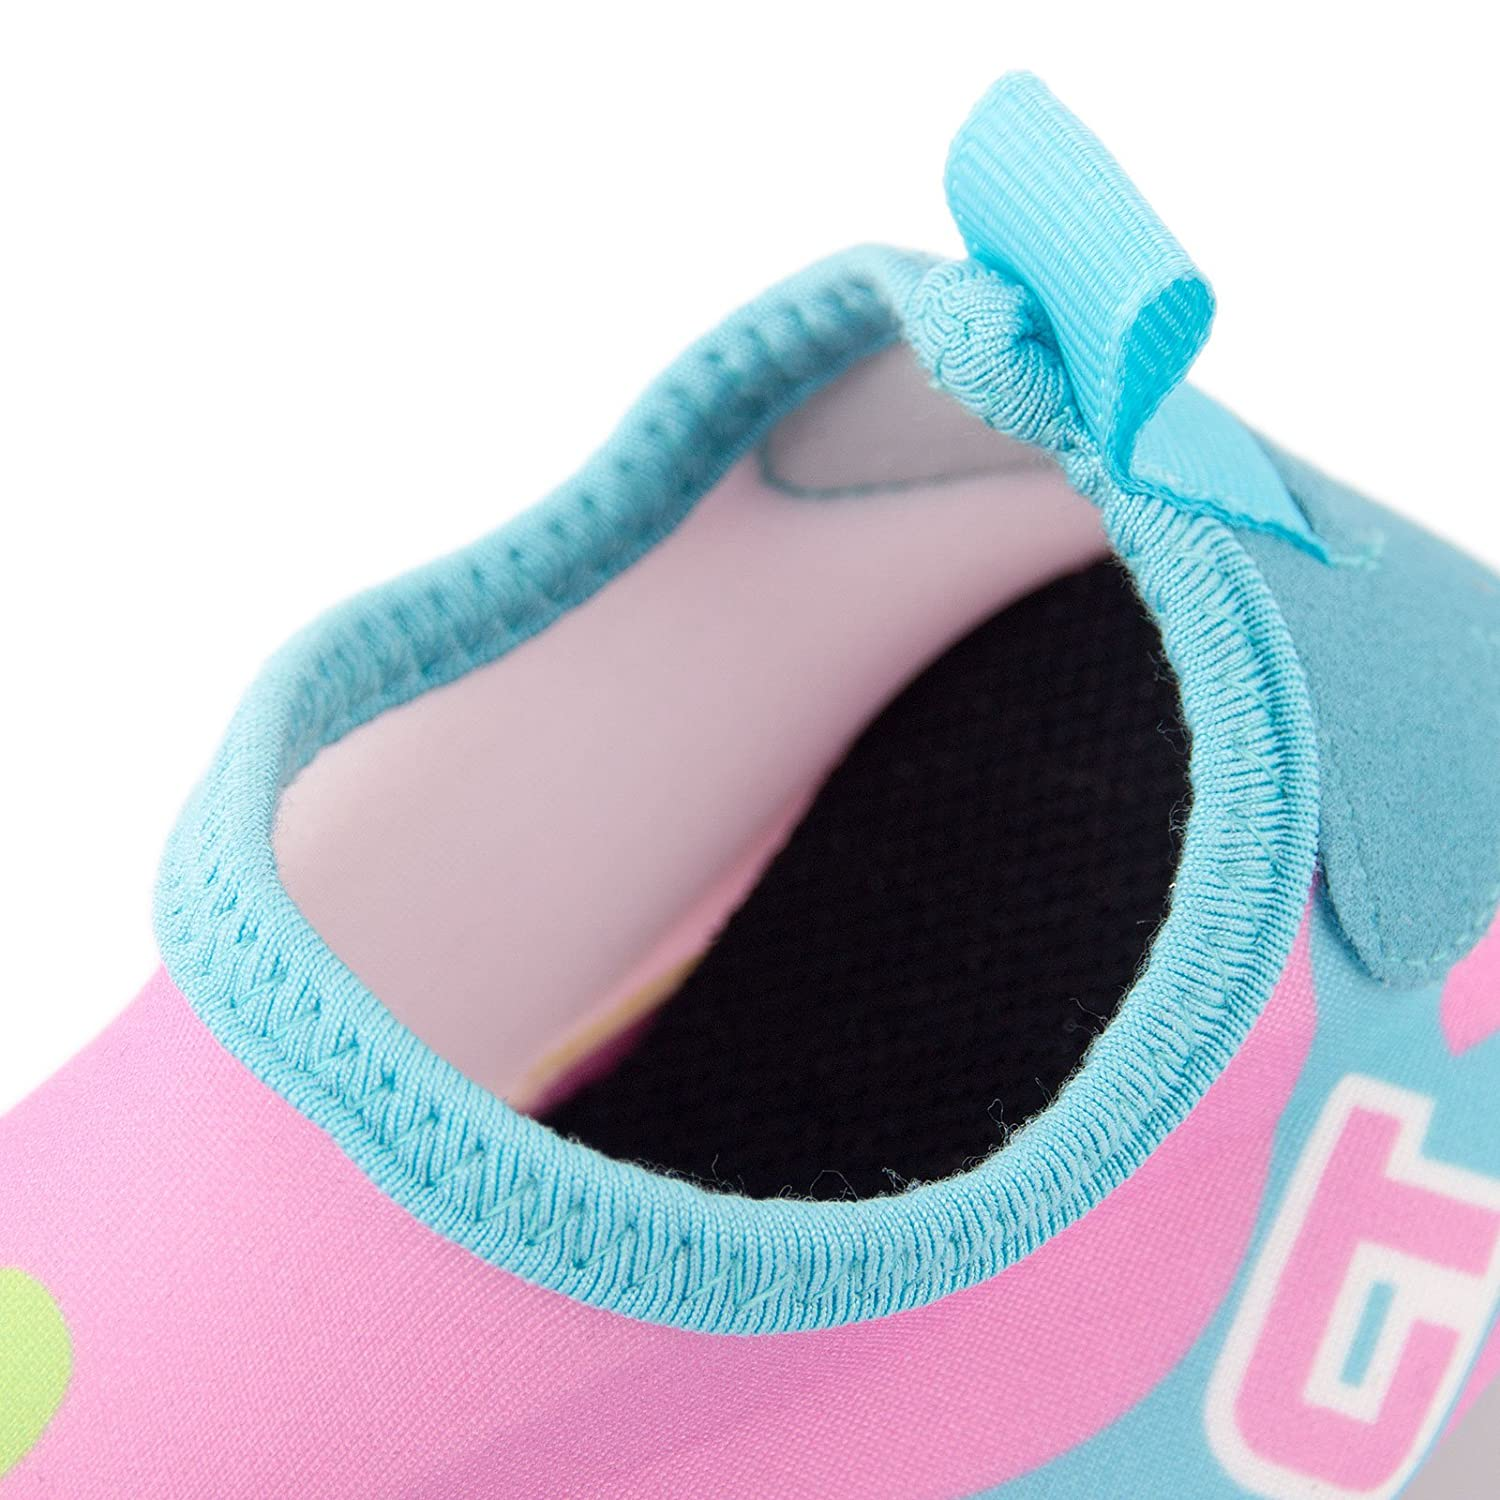 Dizoon Lightweight Kids Water Shoes Quick Drying Socks for Pool Beach